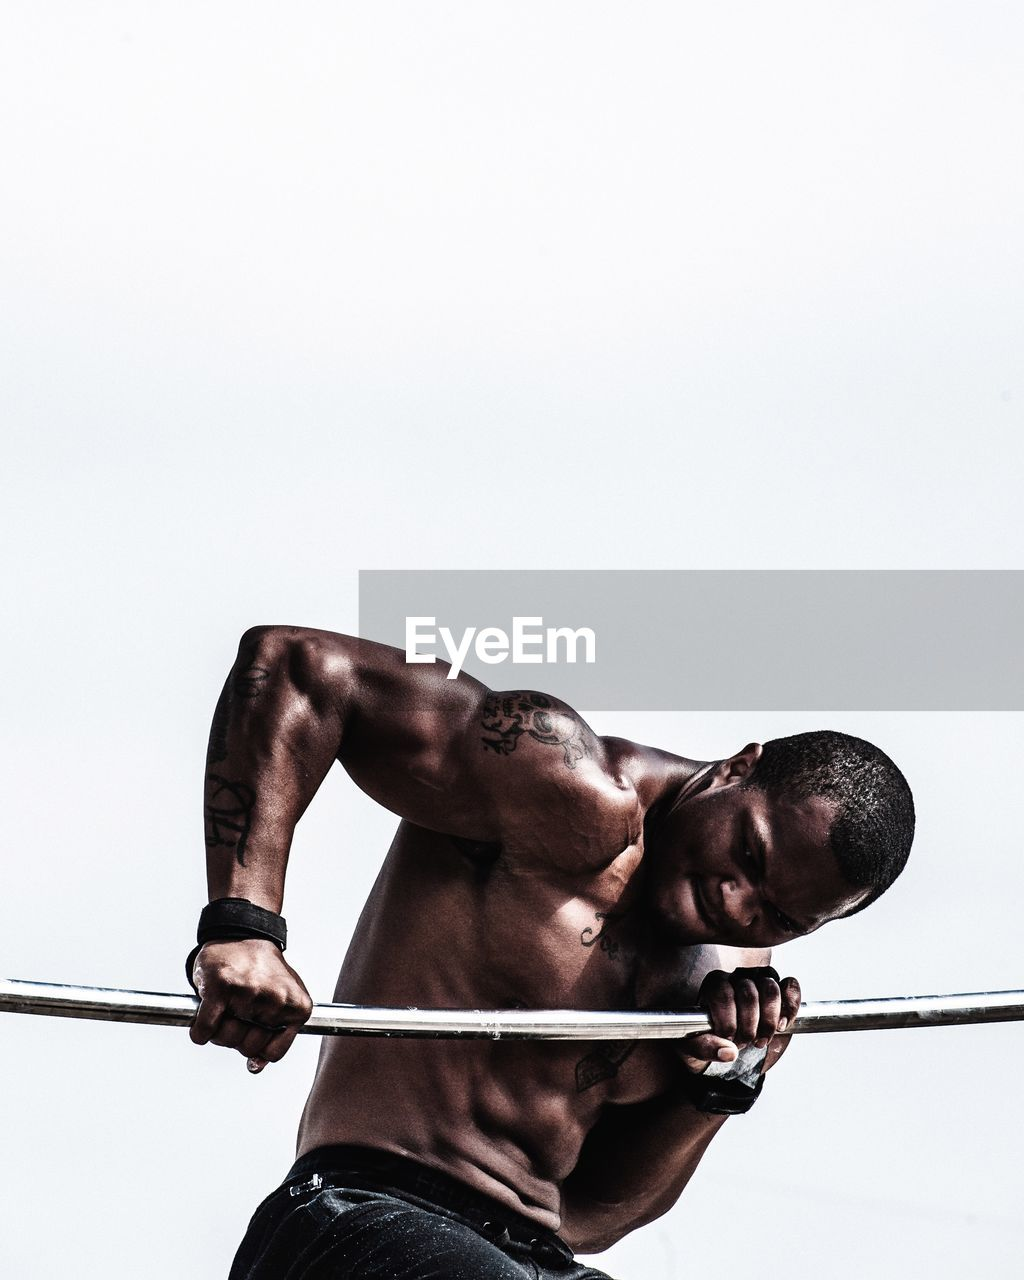 Shirtless young man lifting weights while standing against white background